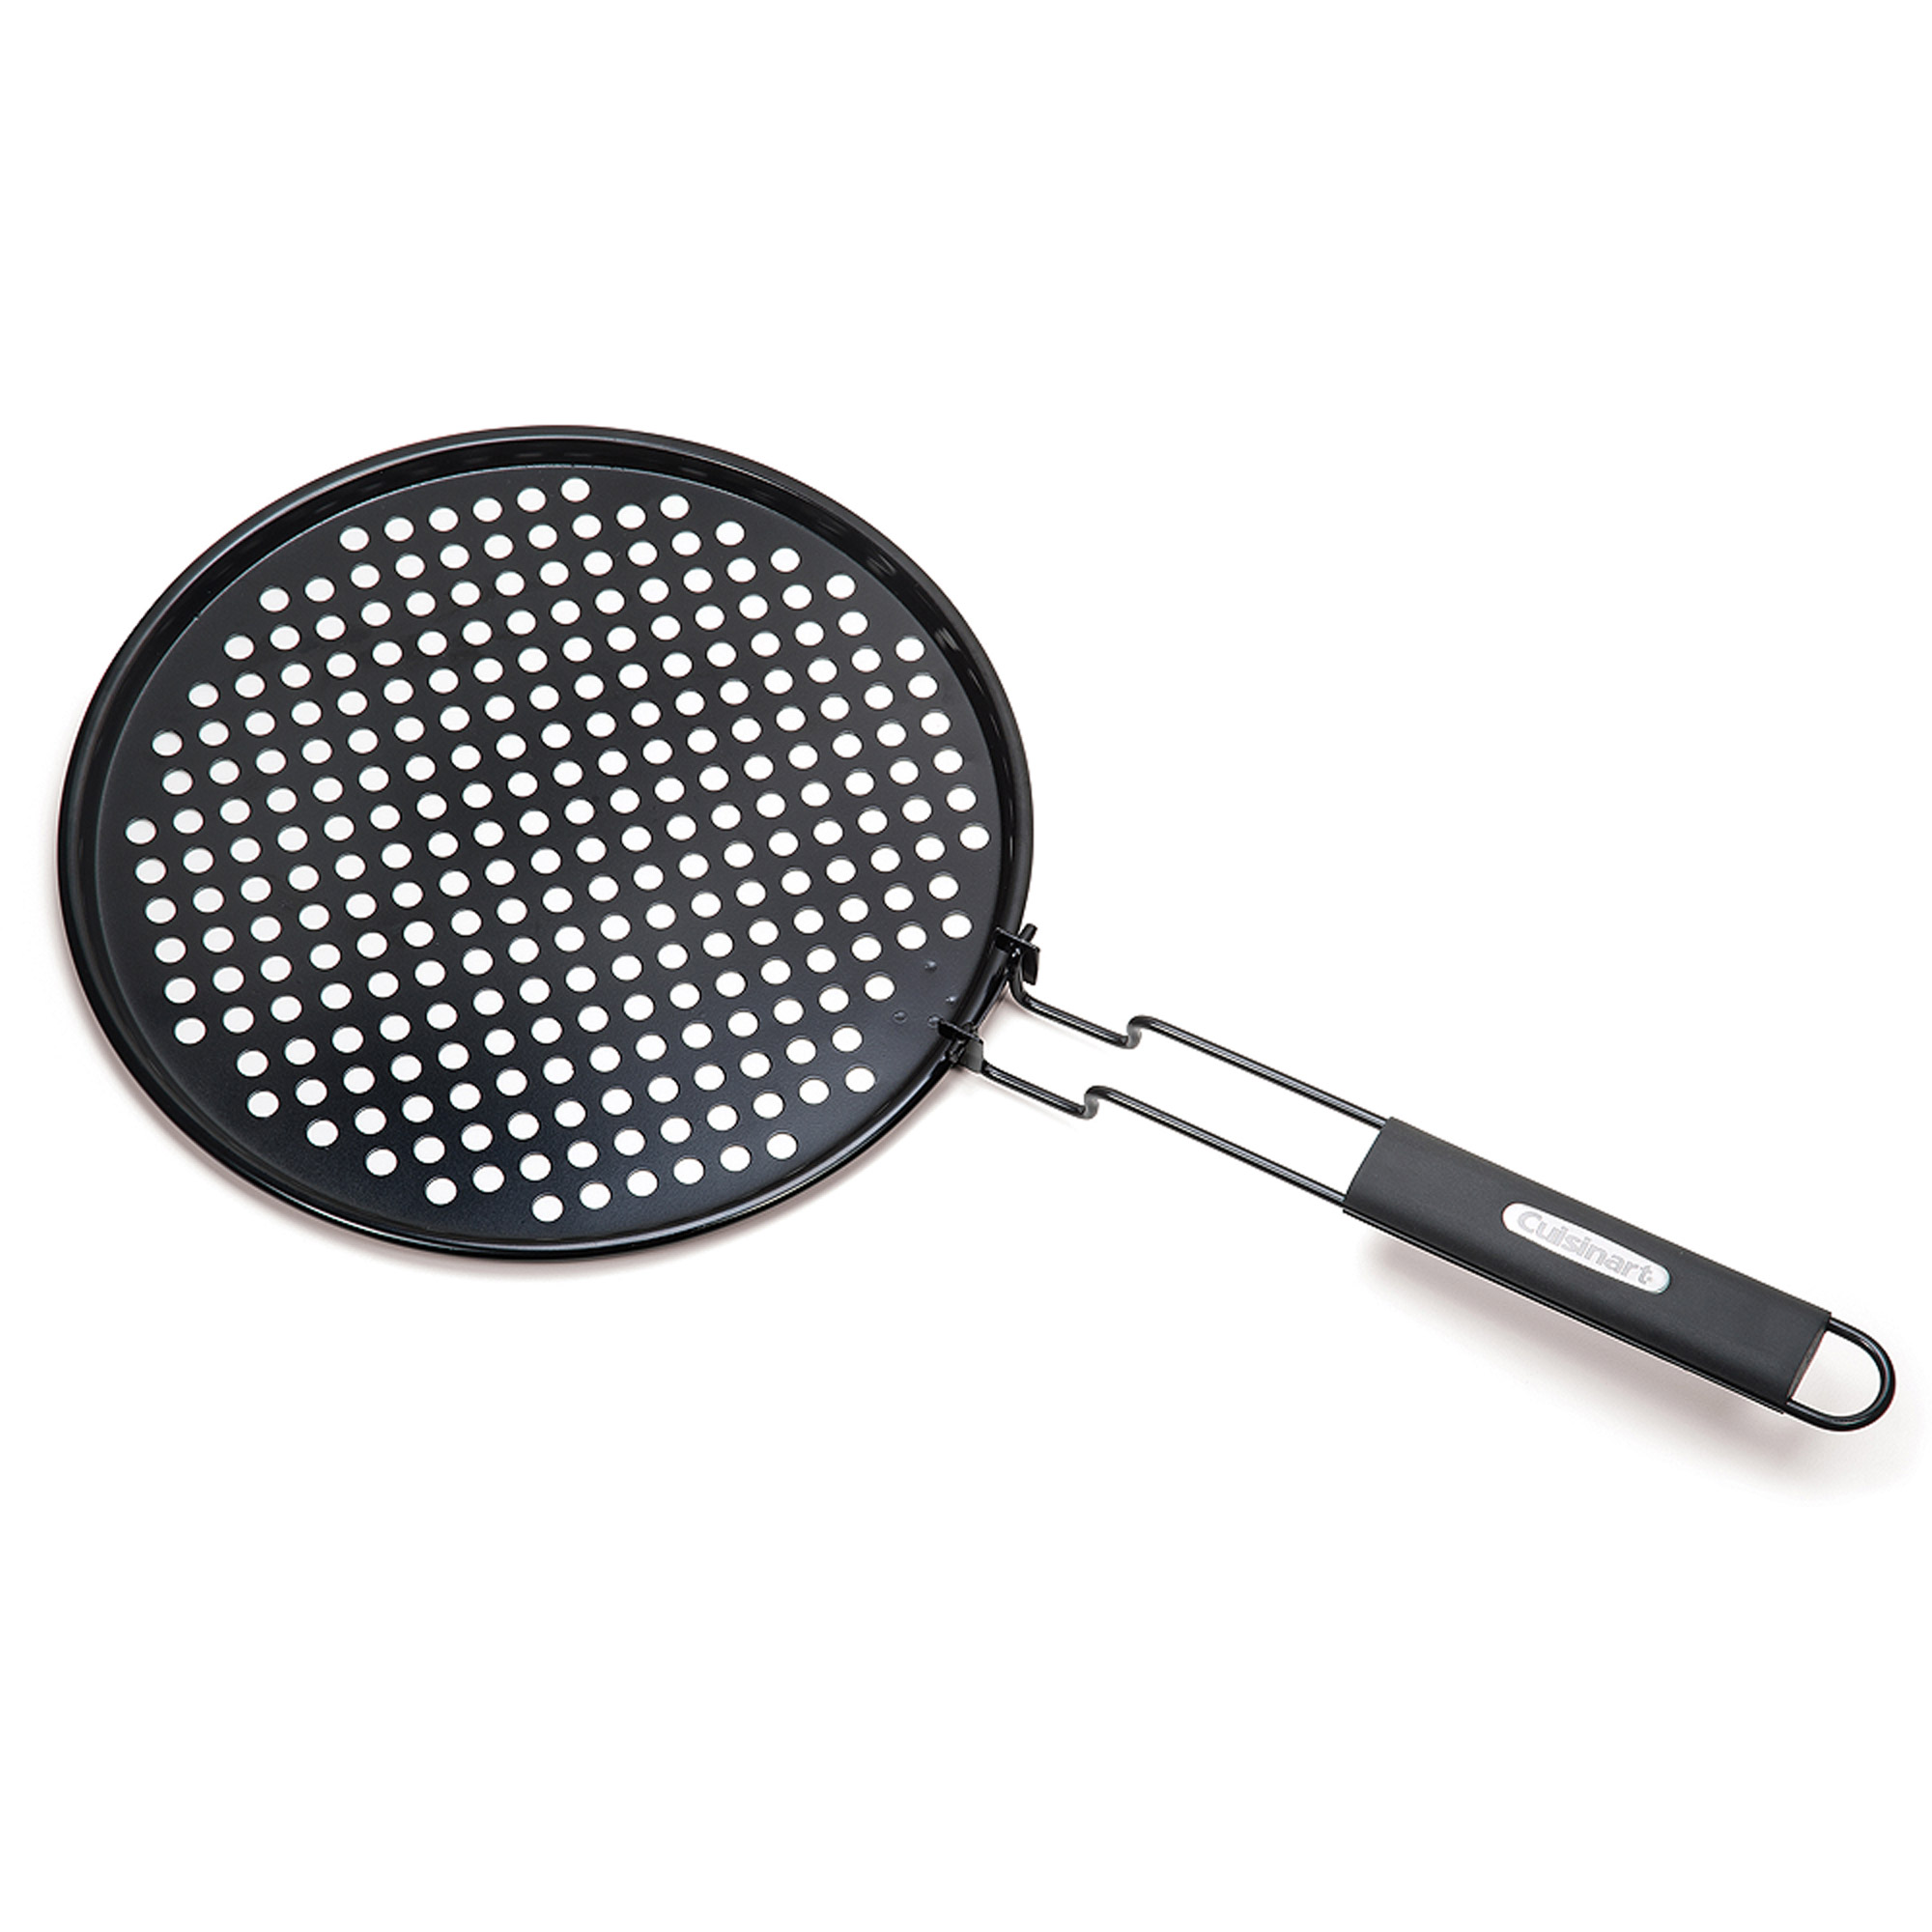 Cuisinart Folding Pizza Pan, CNPS-417